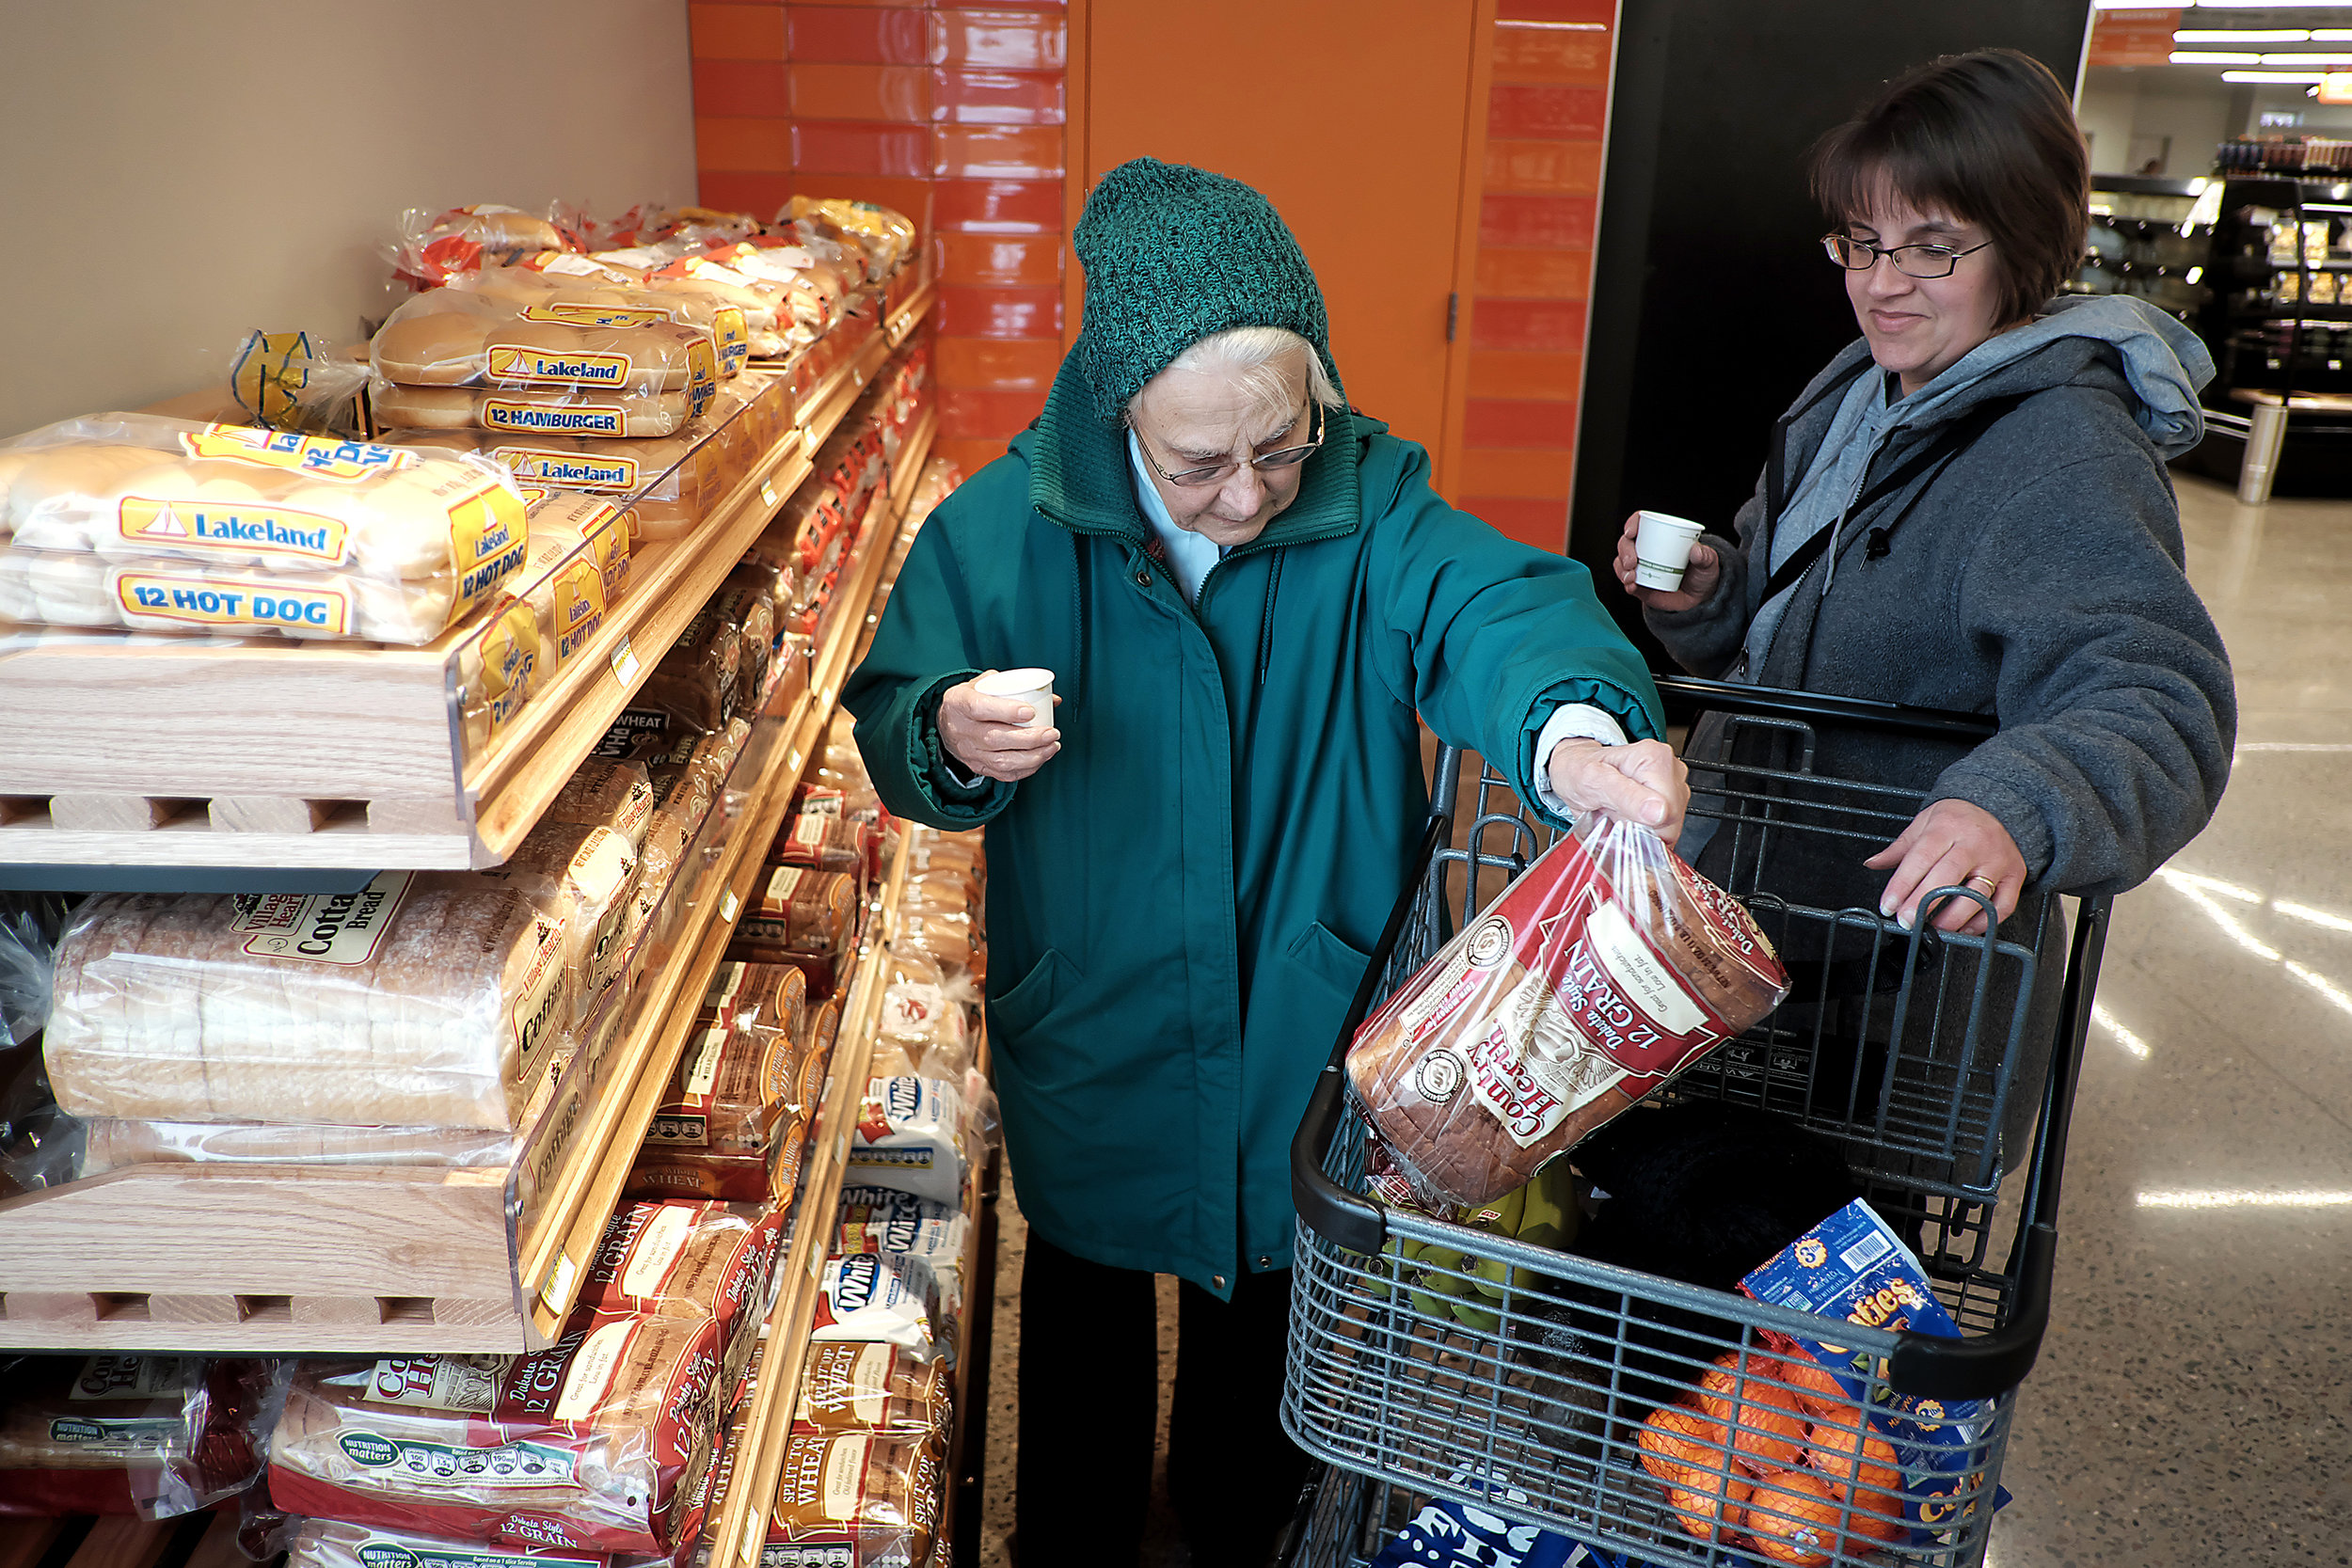 Ursula Armstrong, left, picks out a loaf of bread while shopping with her daughter, Heidi Temple, during the grand opening of North Market, the new nonprofit grocery store on 44th and Humboldt Avenues N in December.